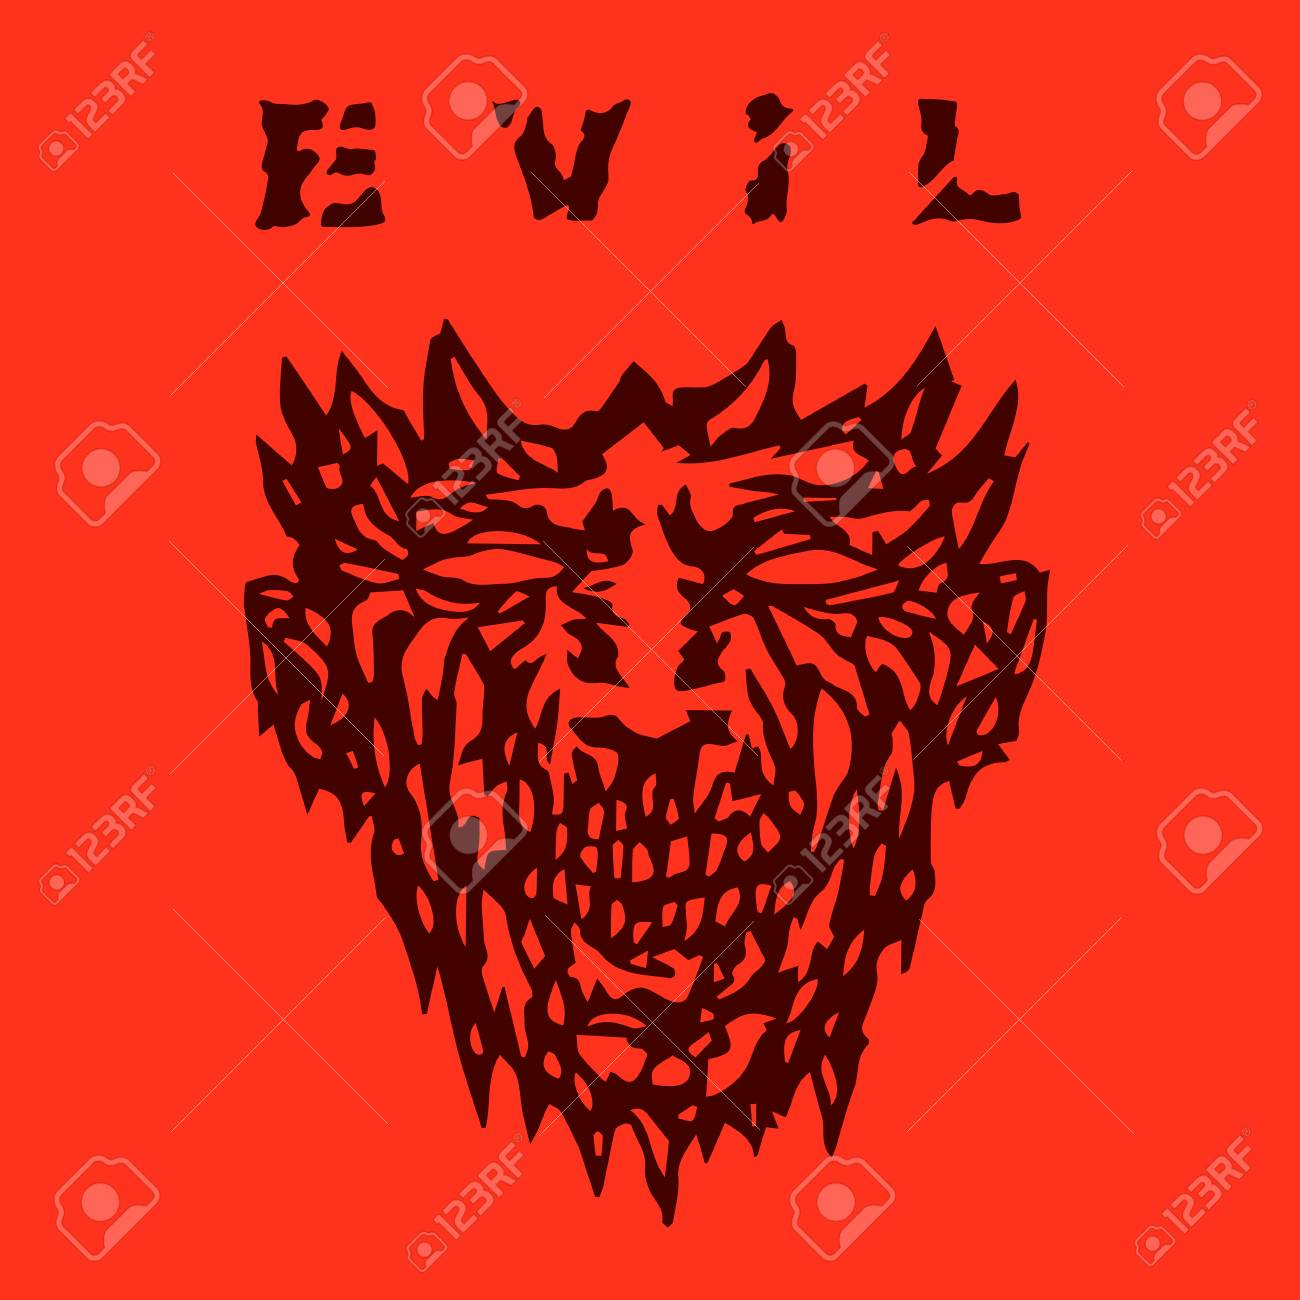 Evil Monster Face. Angry Mask In Horror Genre. Stock Photo 0e02874c7dc8